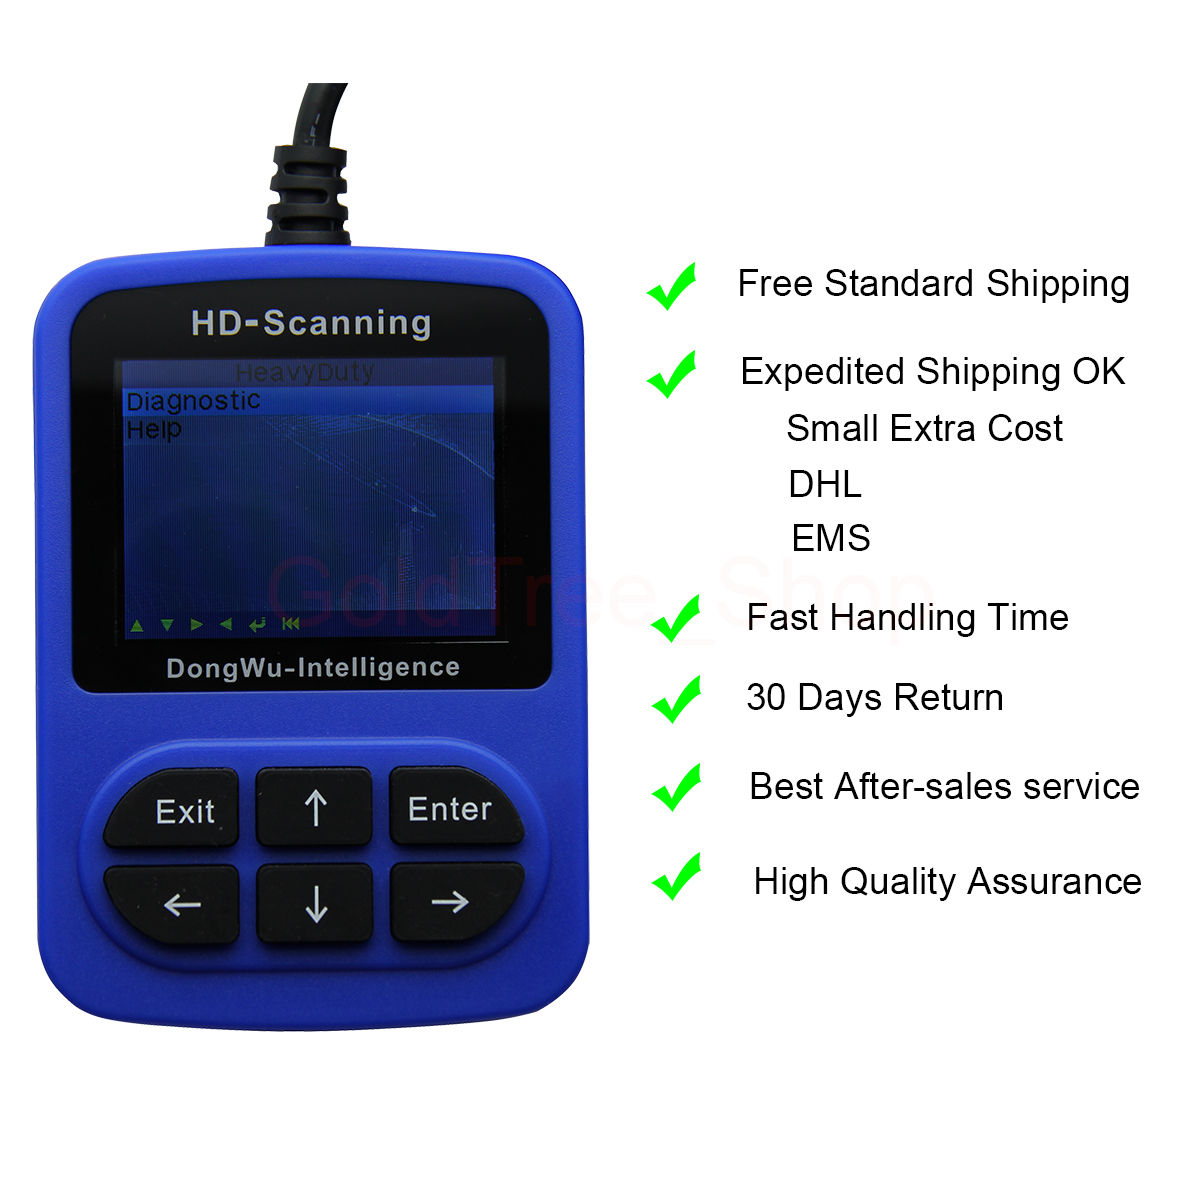 Details about J1939 J1708 Heavy Duty Diesel Truck Scanner Code Reader  Diagnostic Scan Tool